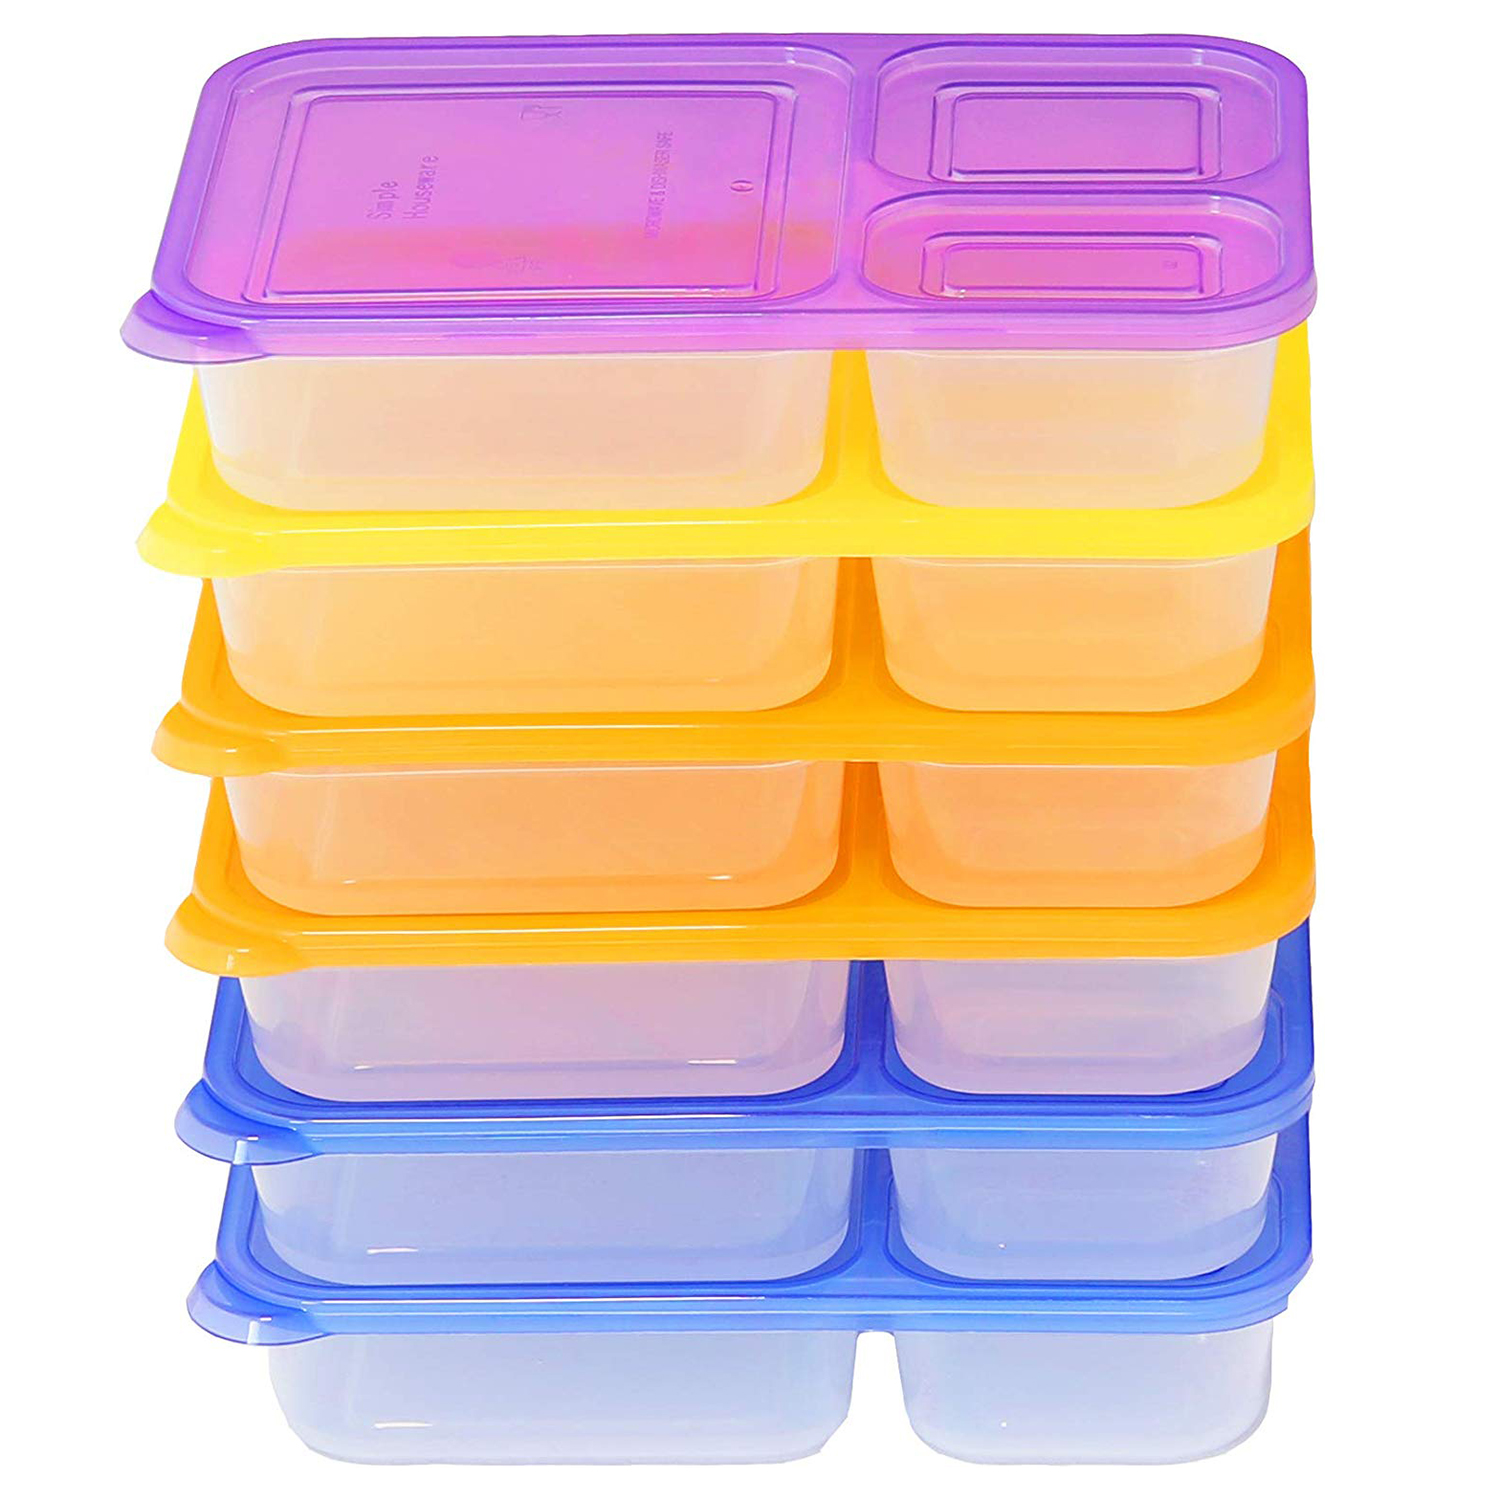 6 Pack SimpleHouseware 3-Compartment Heavy Duty Boxes